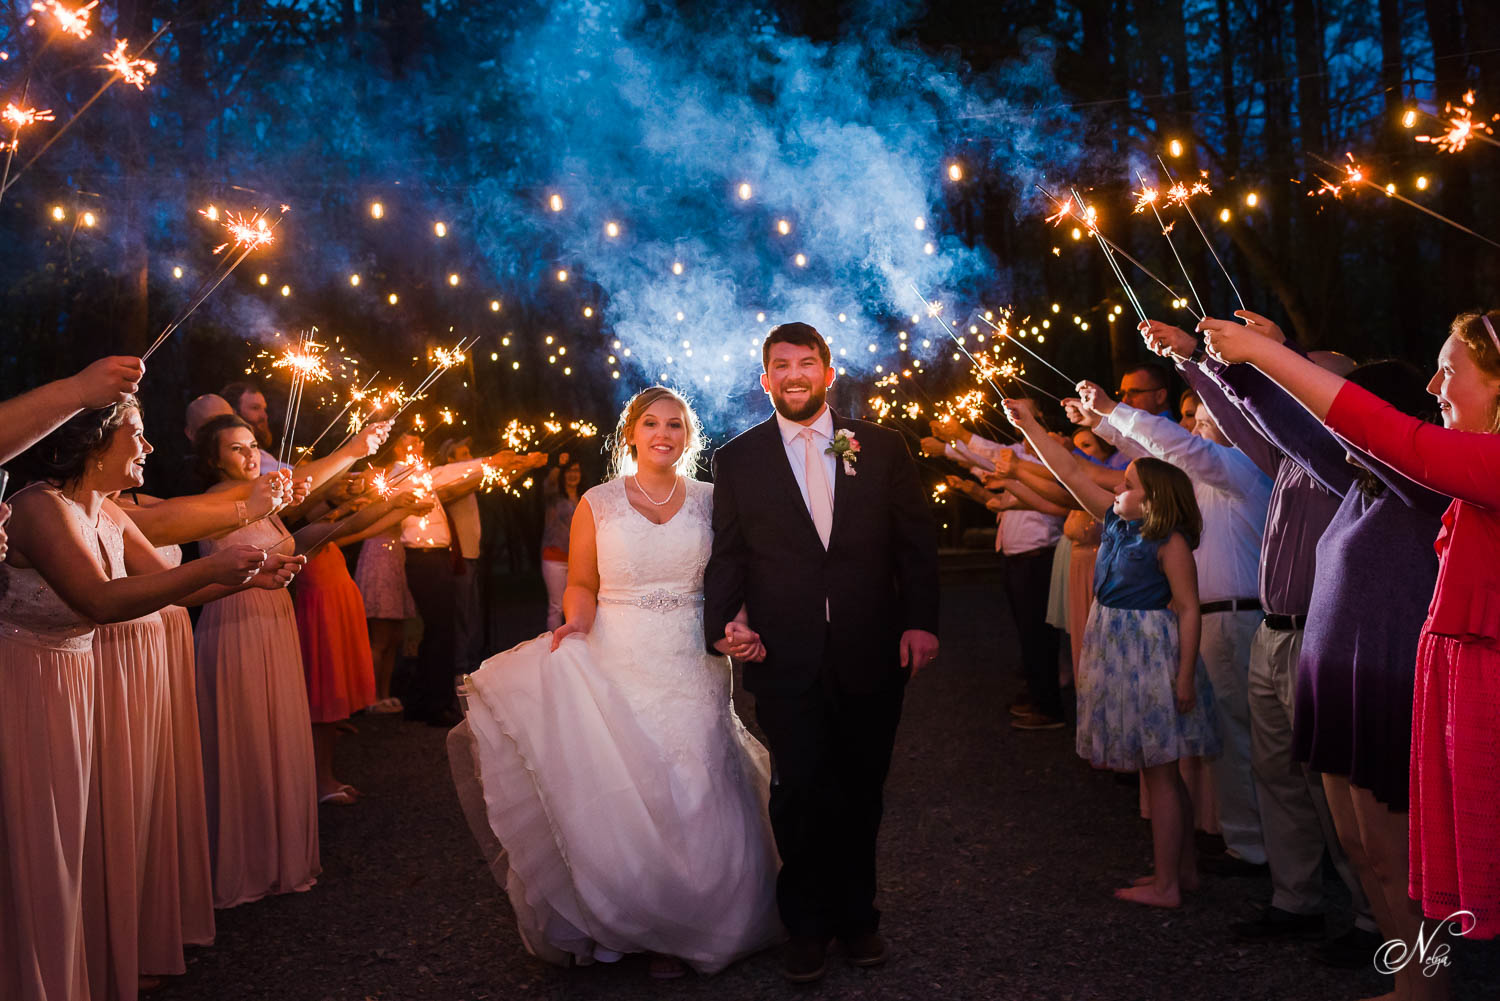 bride and groom walking under sparklers held by guests hoping not to get burnt